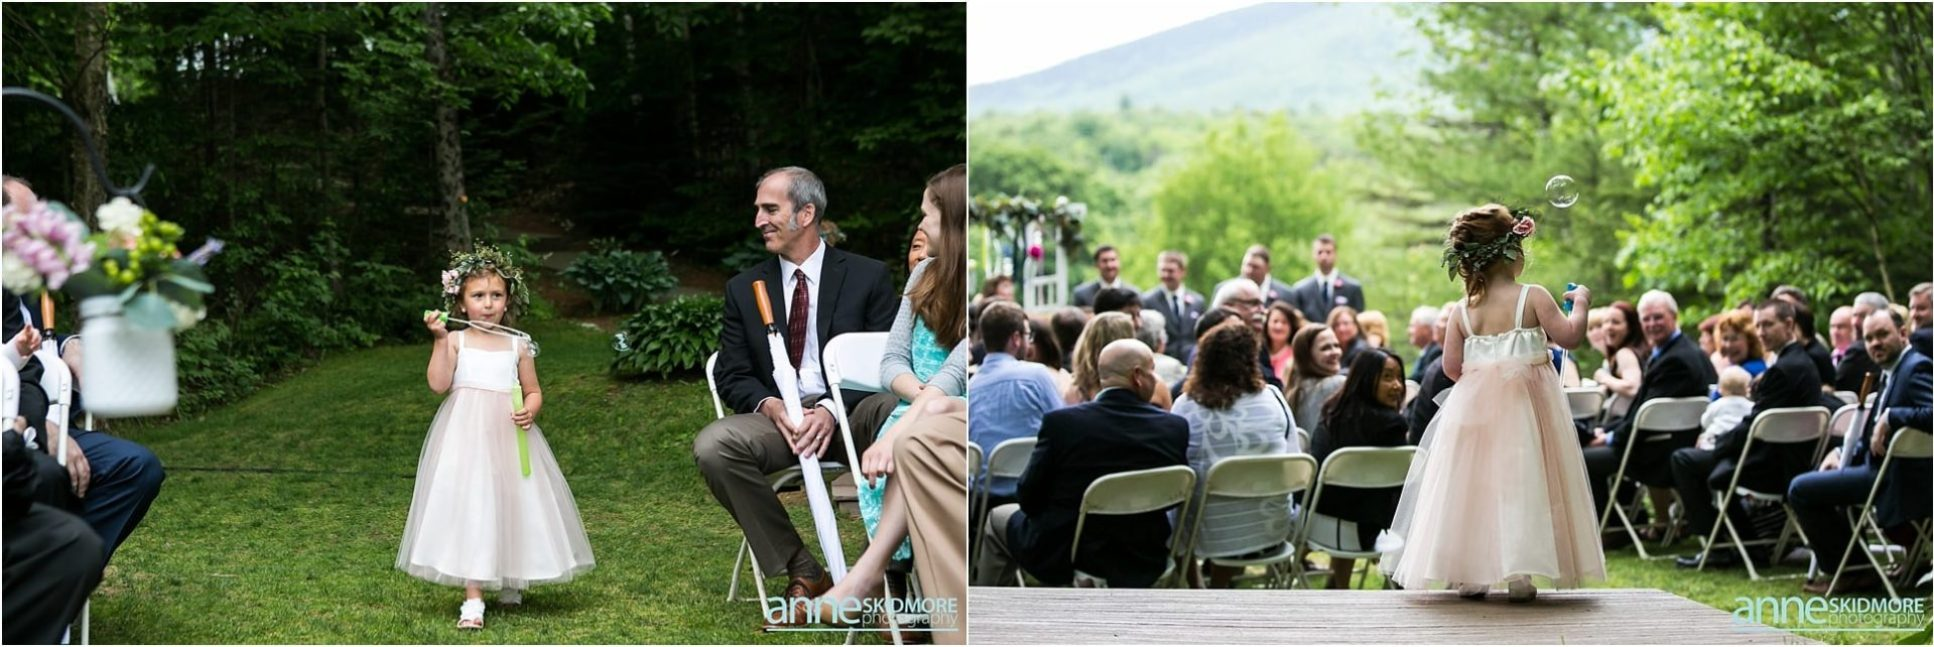 Eagle_Mountain_House_Wedding_0039